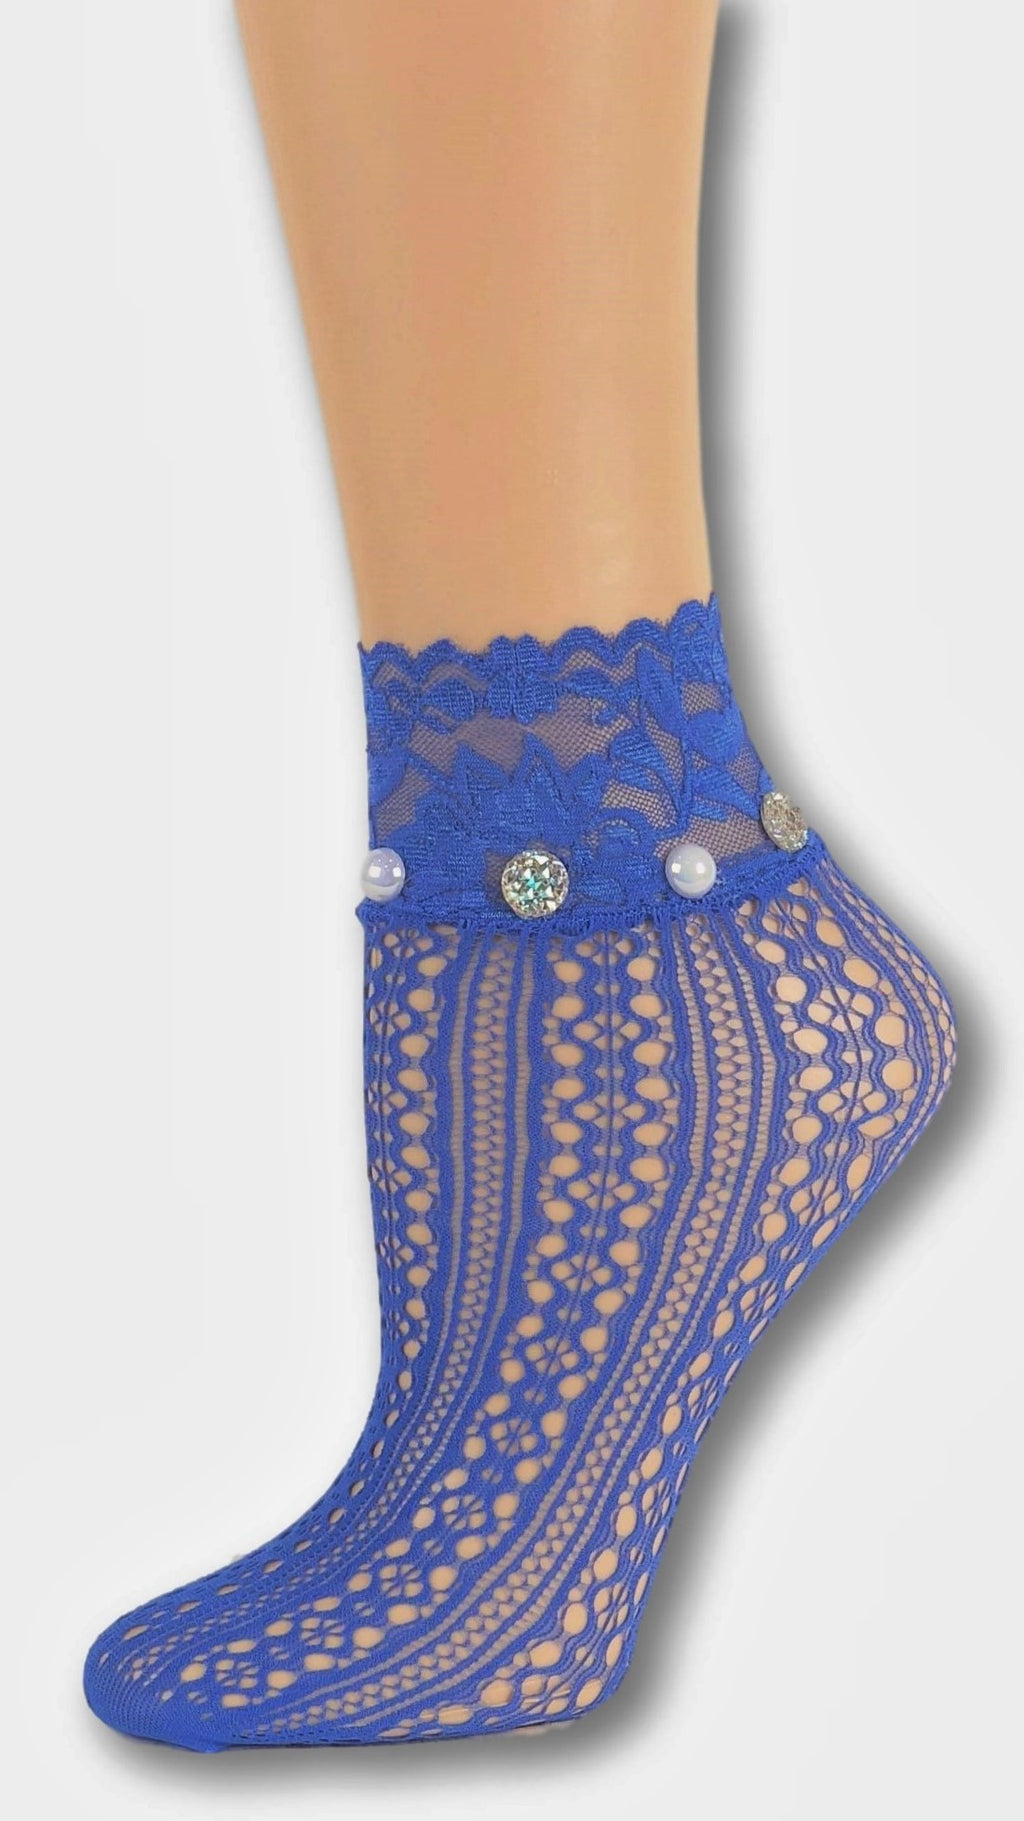 Posh Blue Custom Mesh Socks with beads - Global Trendz Fashion®